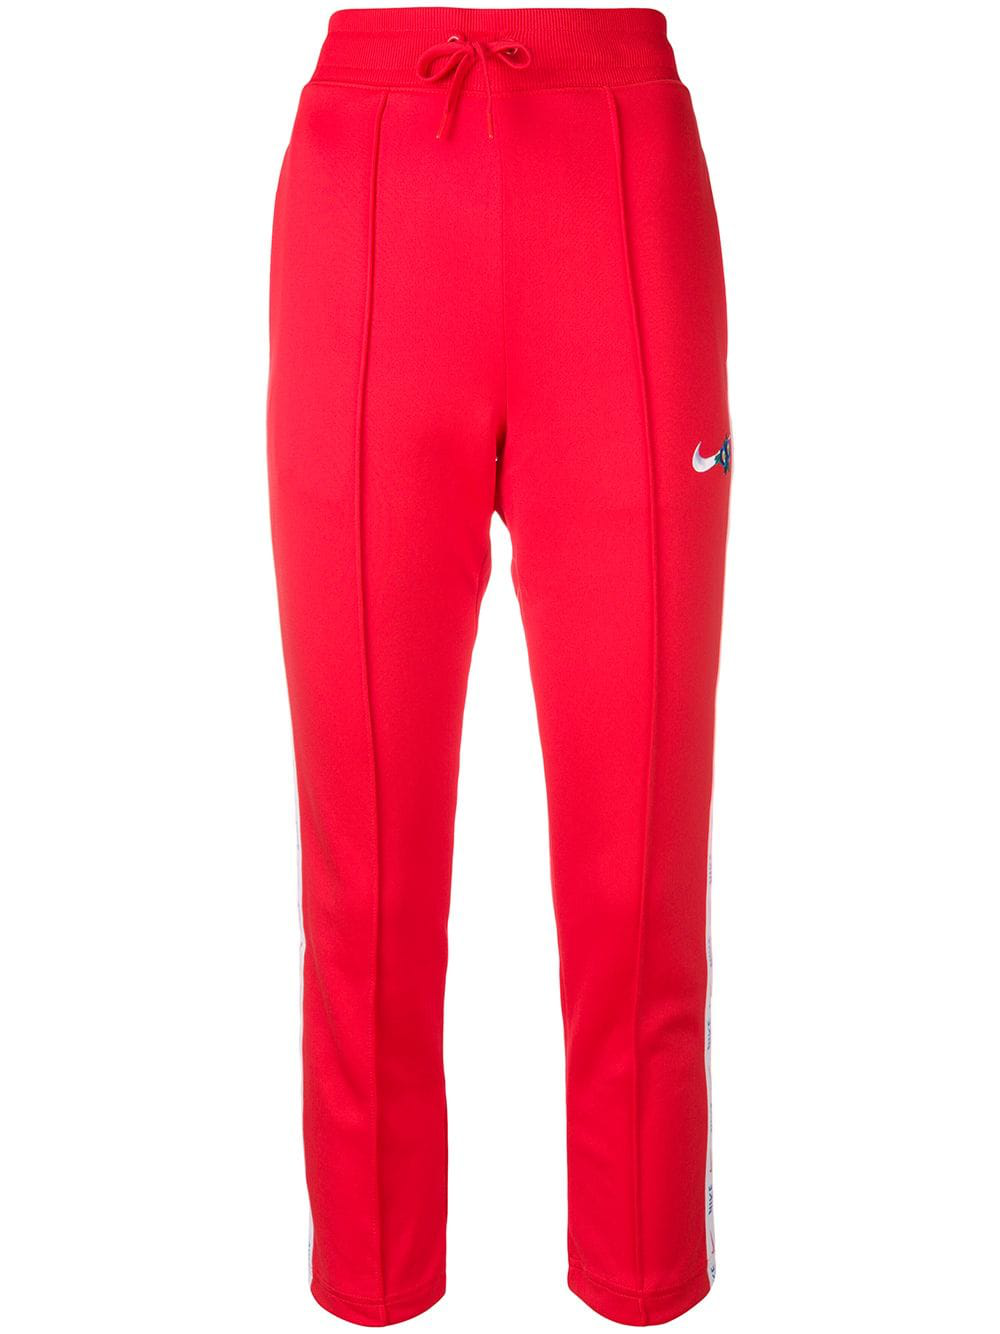 0851f3f22290 Nike Skinny Track Pants - Orange